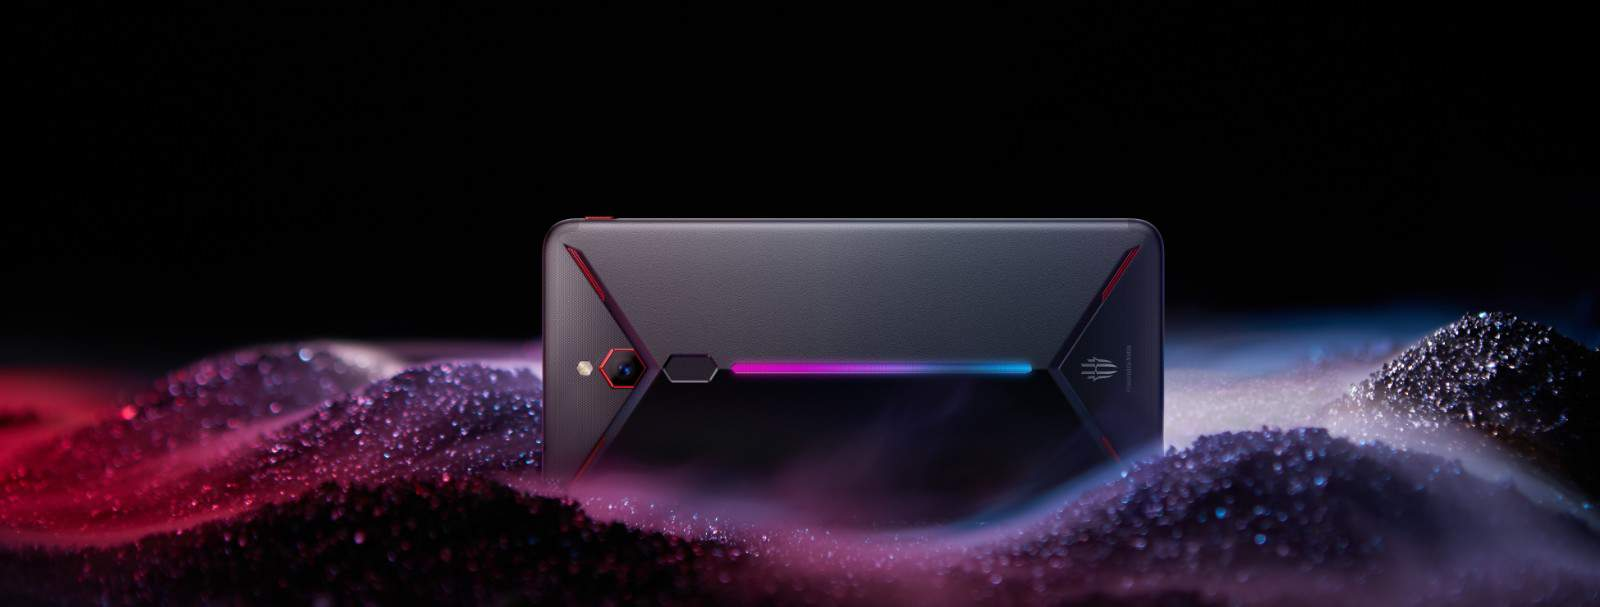 Nubia Red Magic Mars official image 1